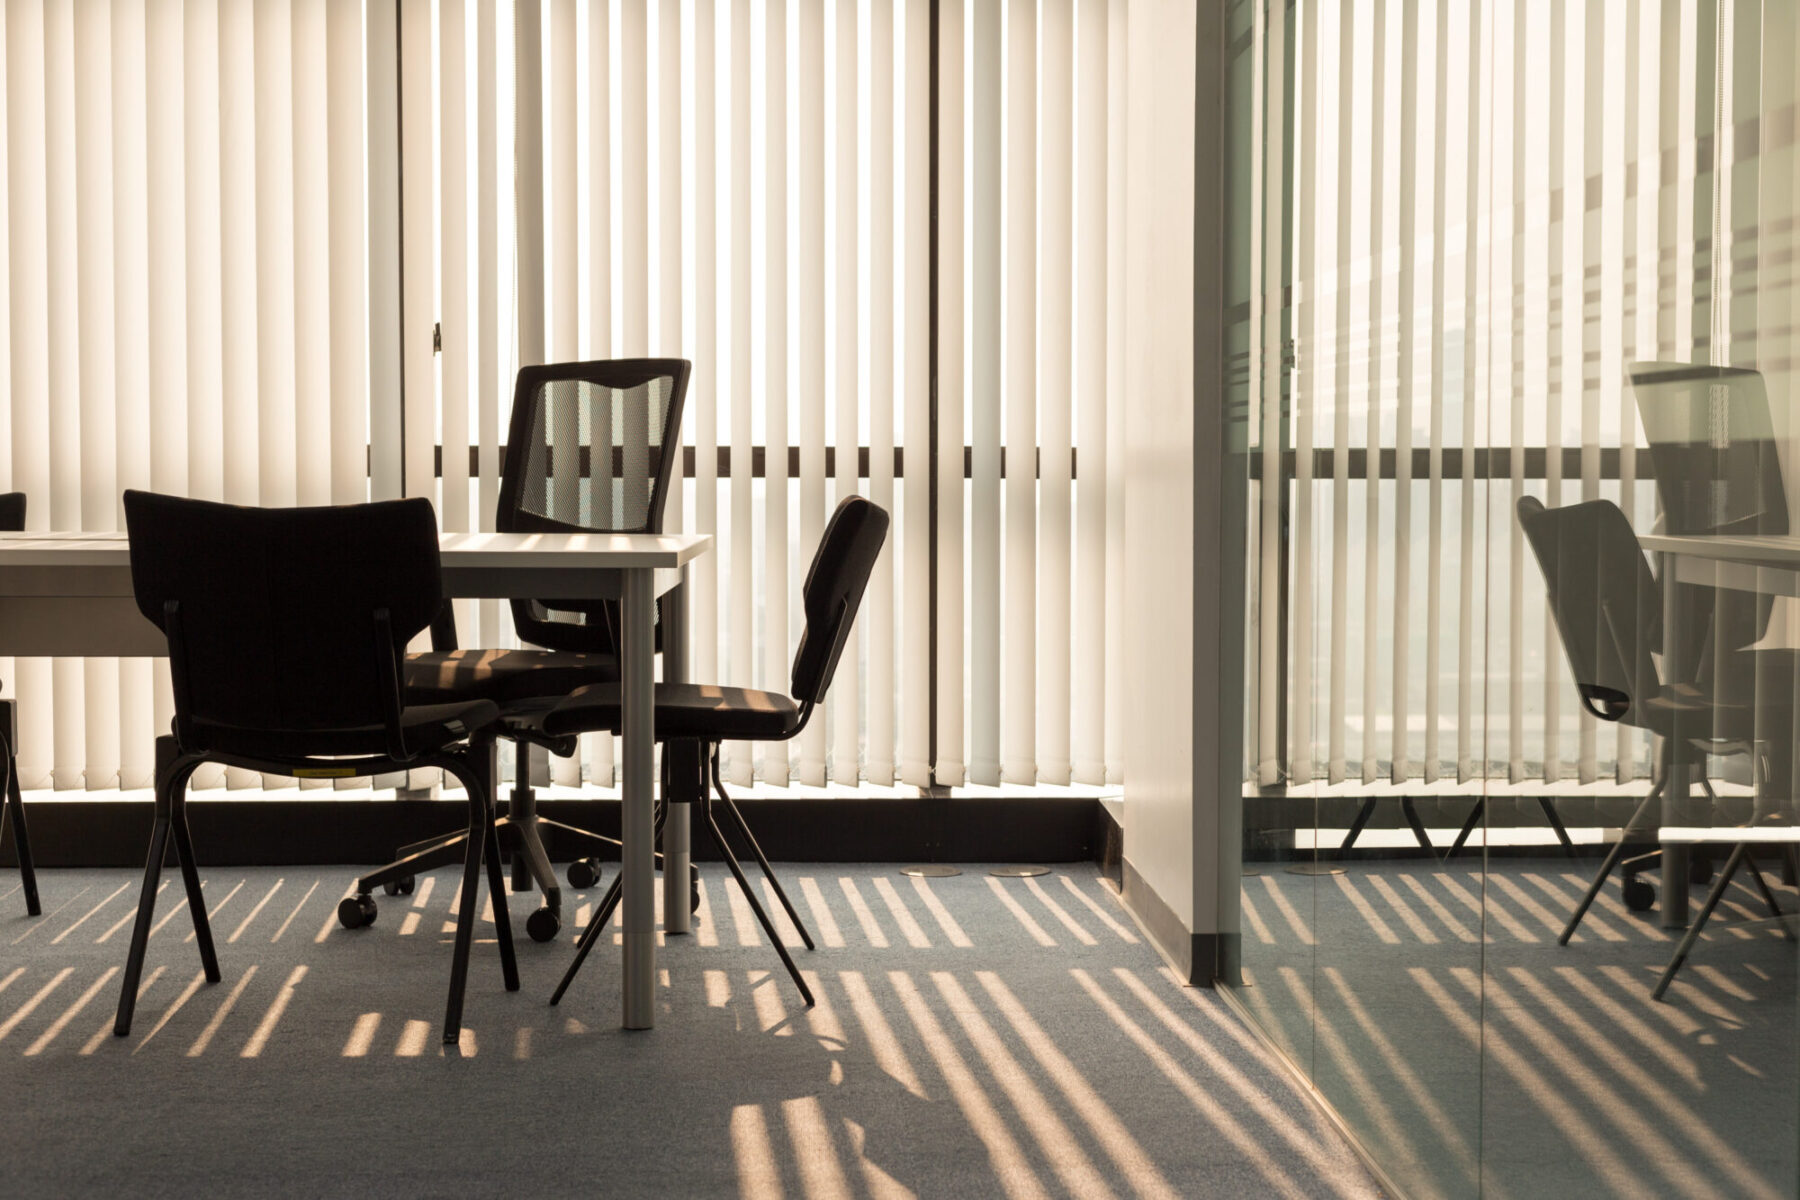 Black office chairs around a white desk, with windows covered by vertical blinds and the background, all reflected in a glass partition to the right.